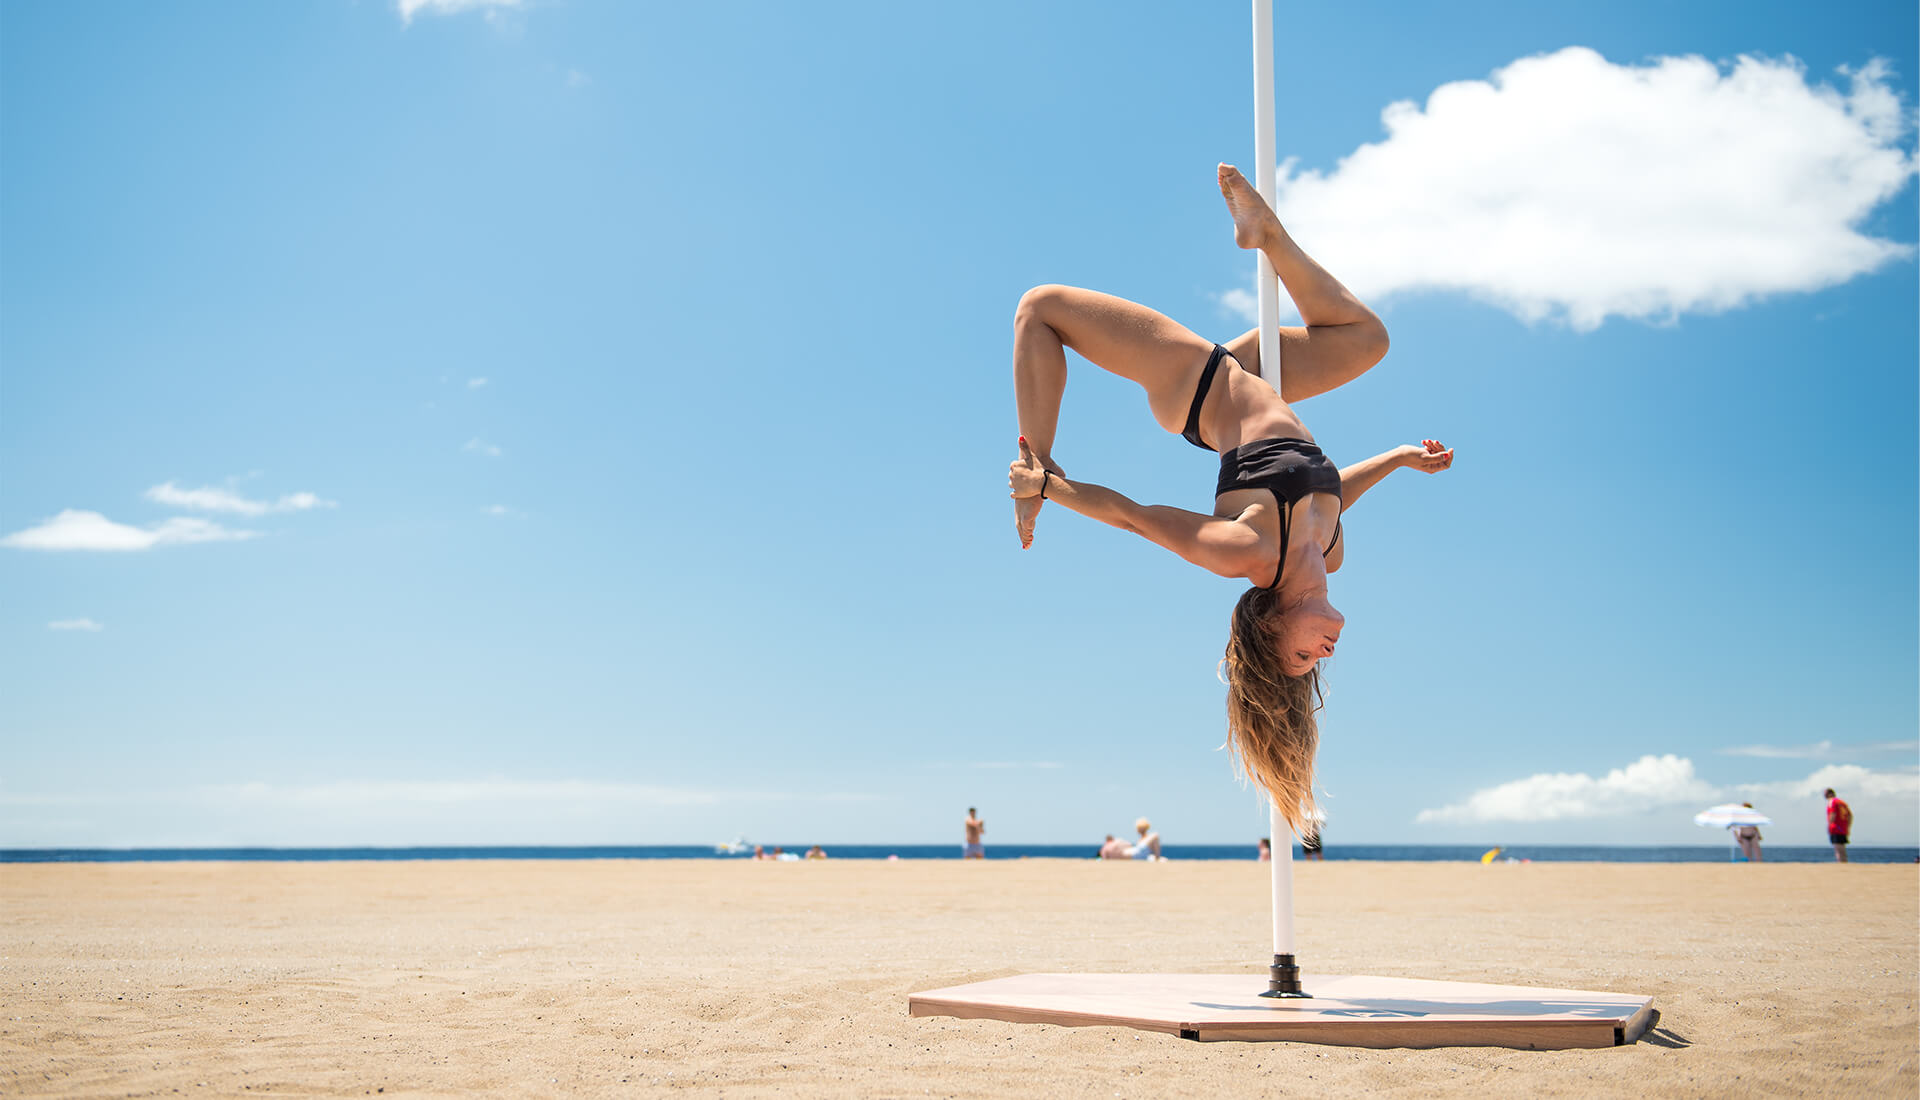 Podium pole dance personnalise